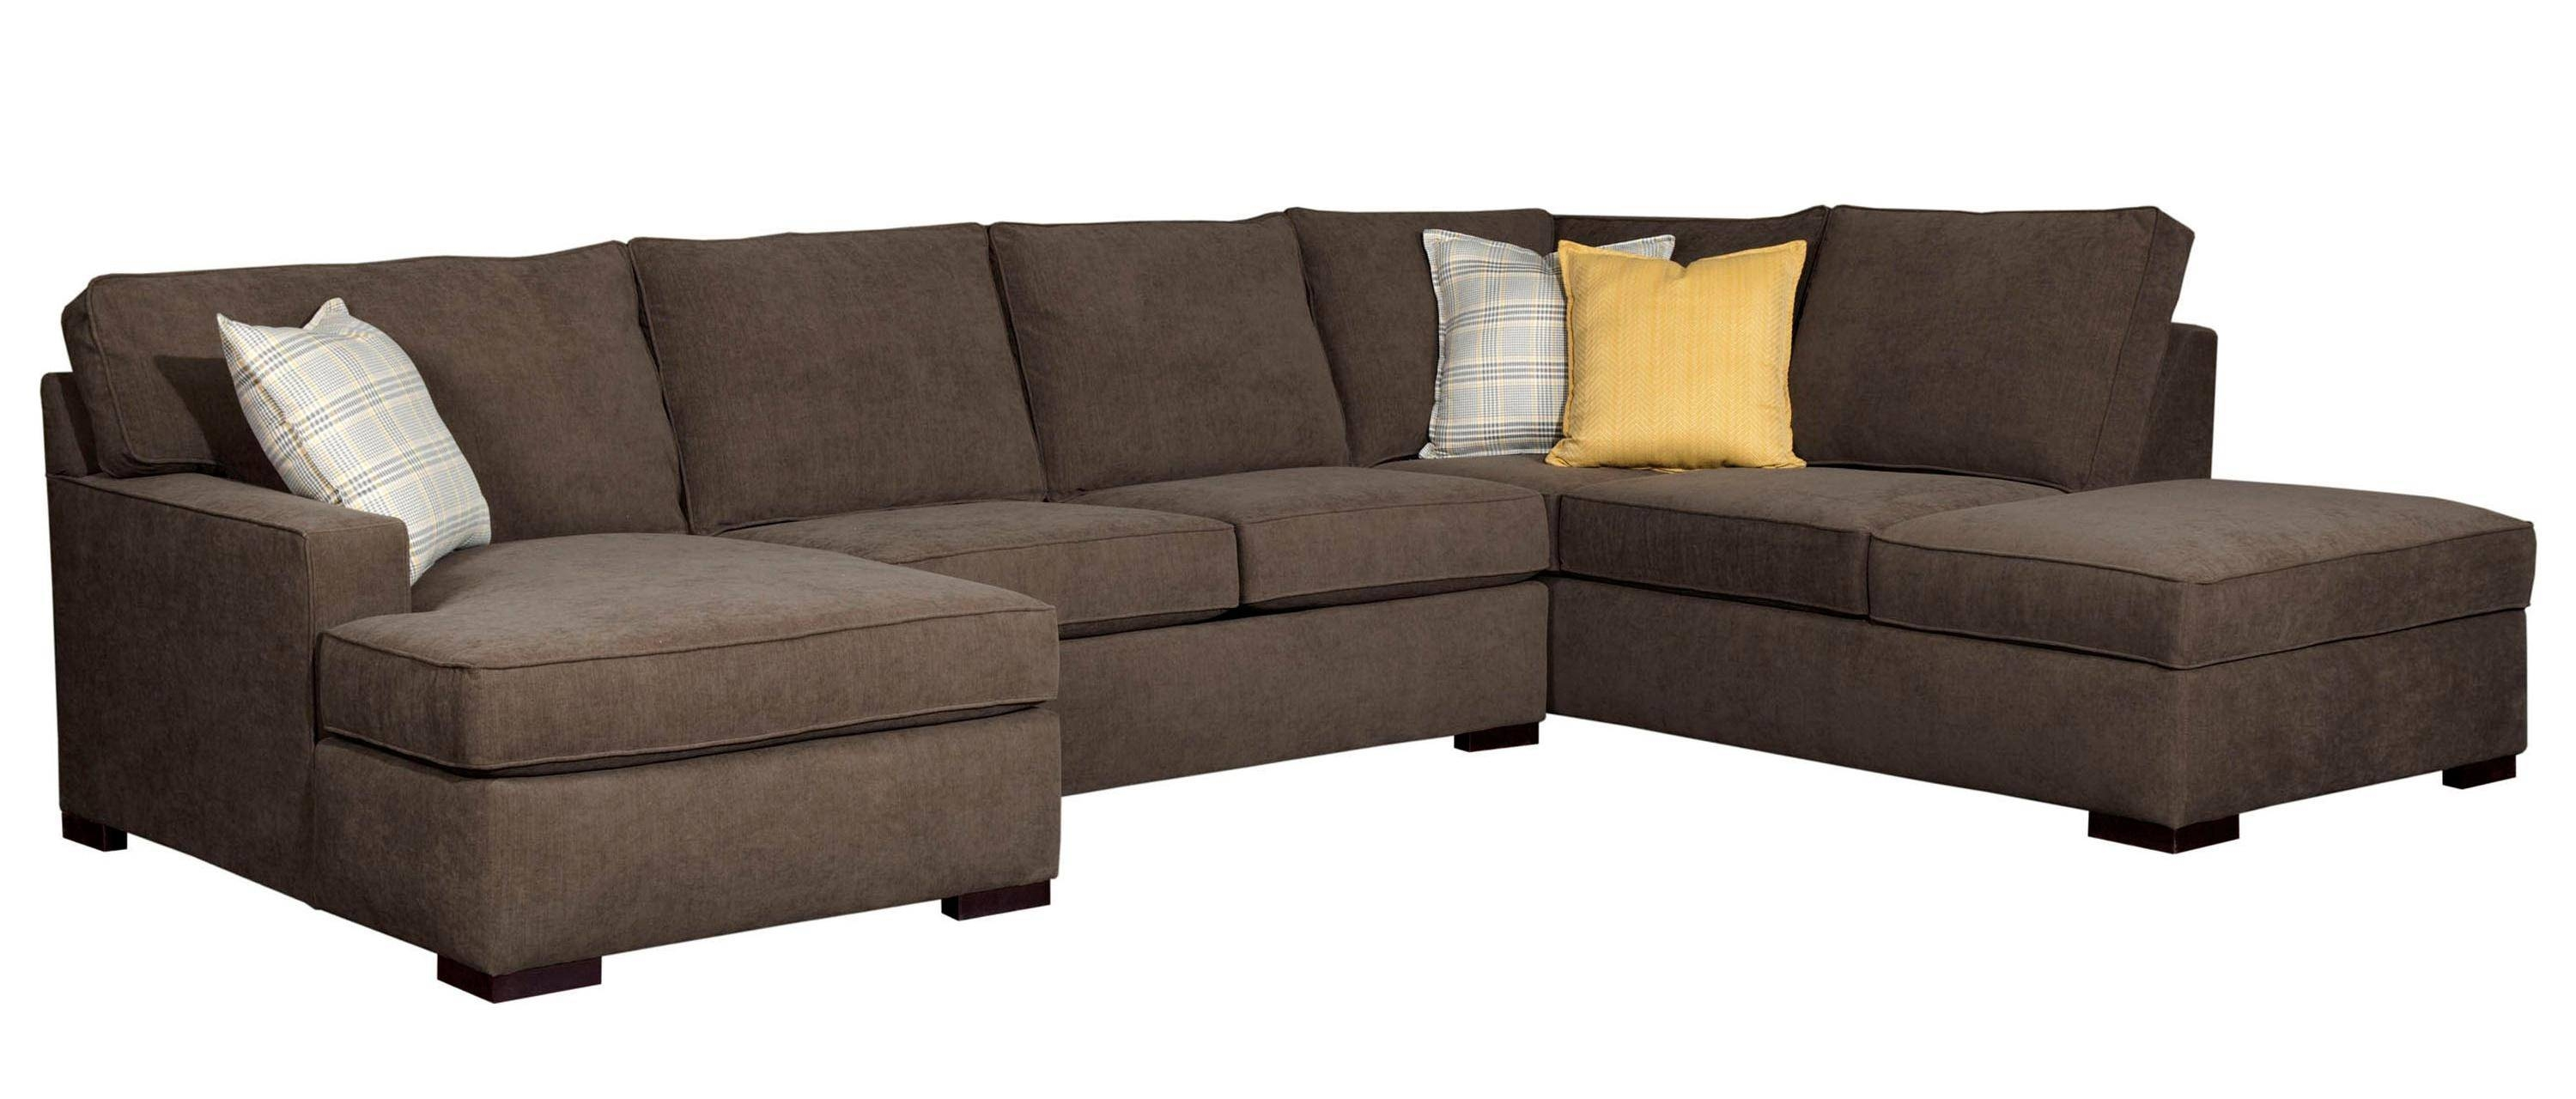 Furniture: Stunning Broyhill Sofas For Enchanting Living Room regarding Broyhill Mckinney Sofas (Image 14 of 15)